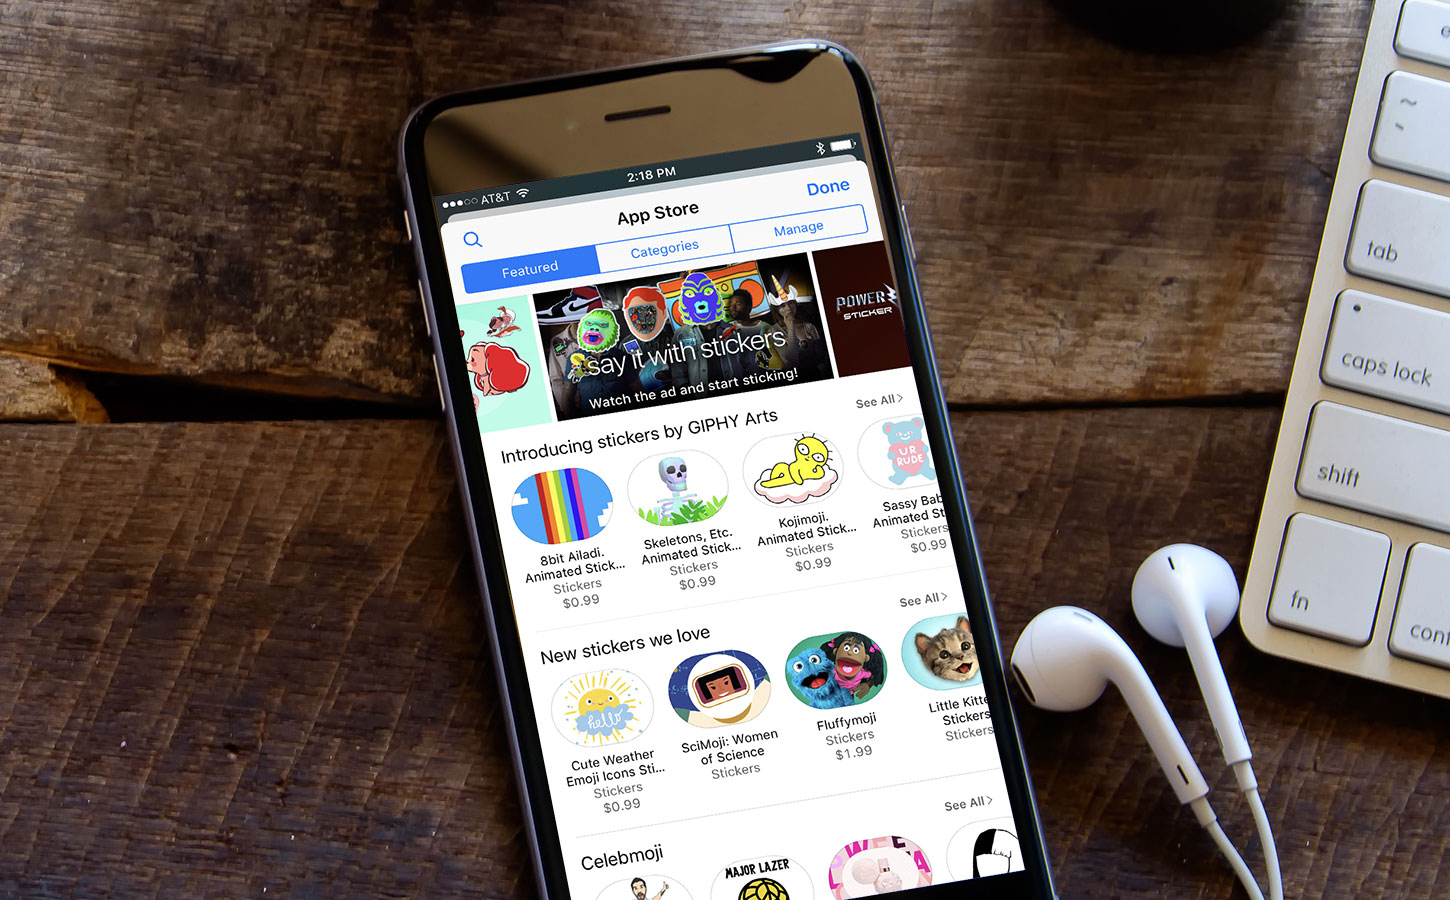 Six months in, iMessage App Store growth slows as developers lose